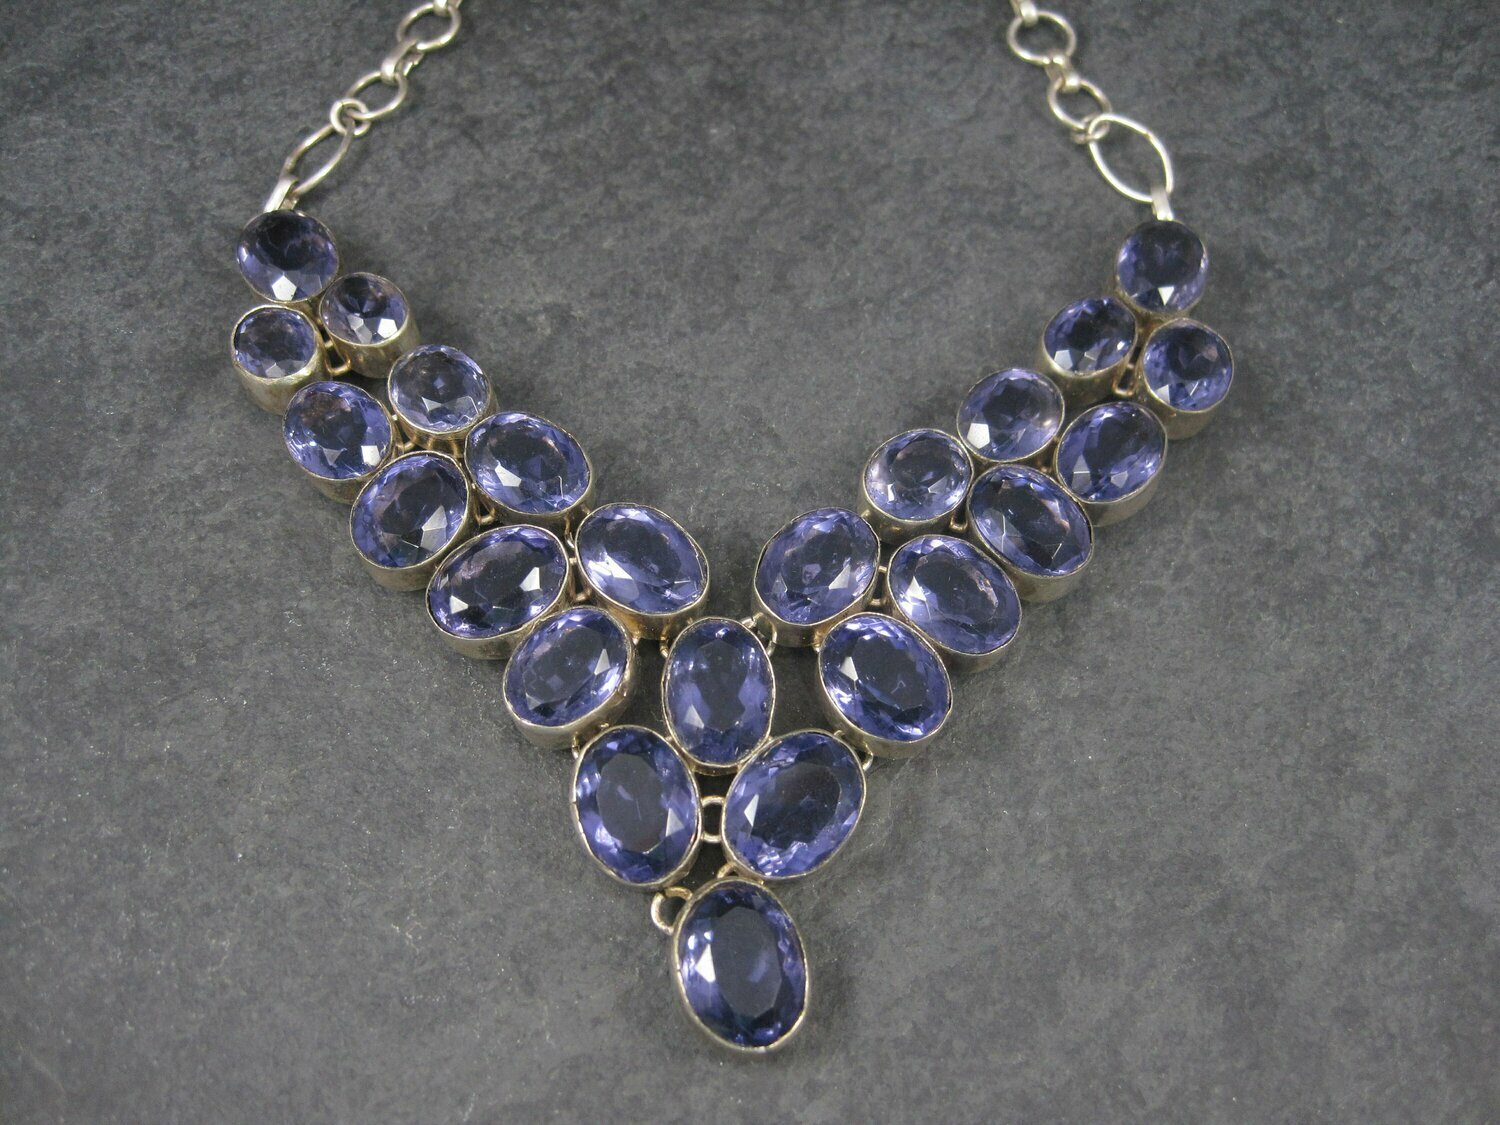 Vintage Amethyst Glass Necklace Silver Plated Bib